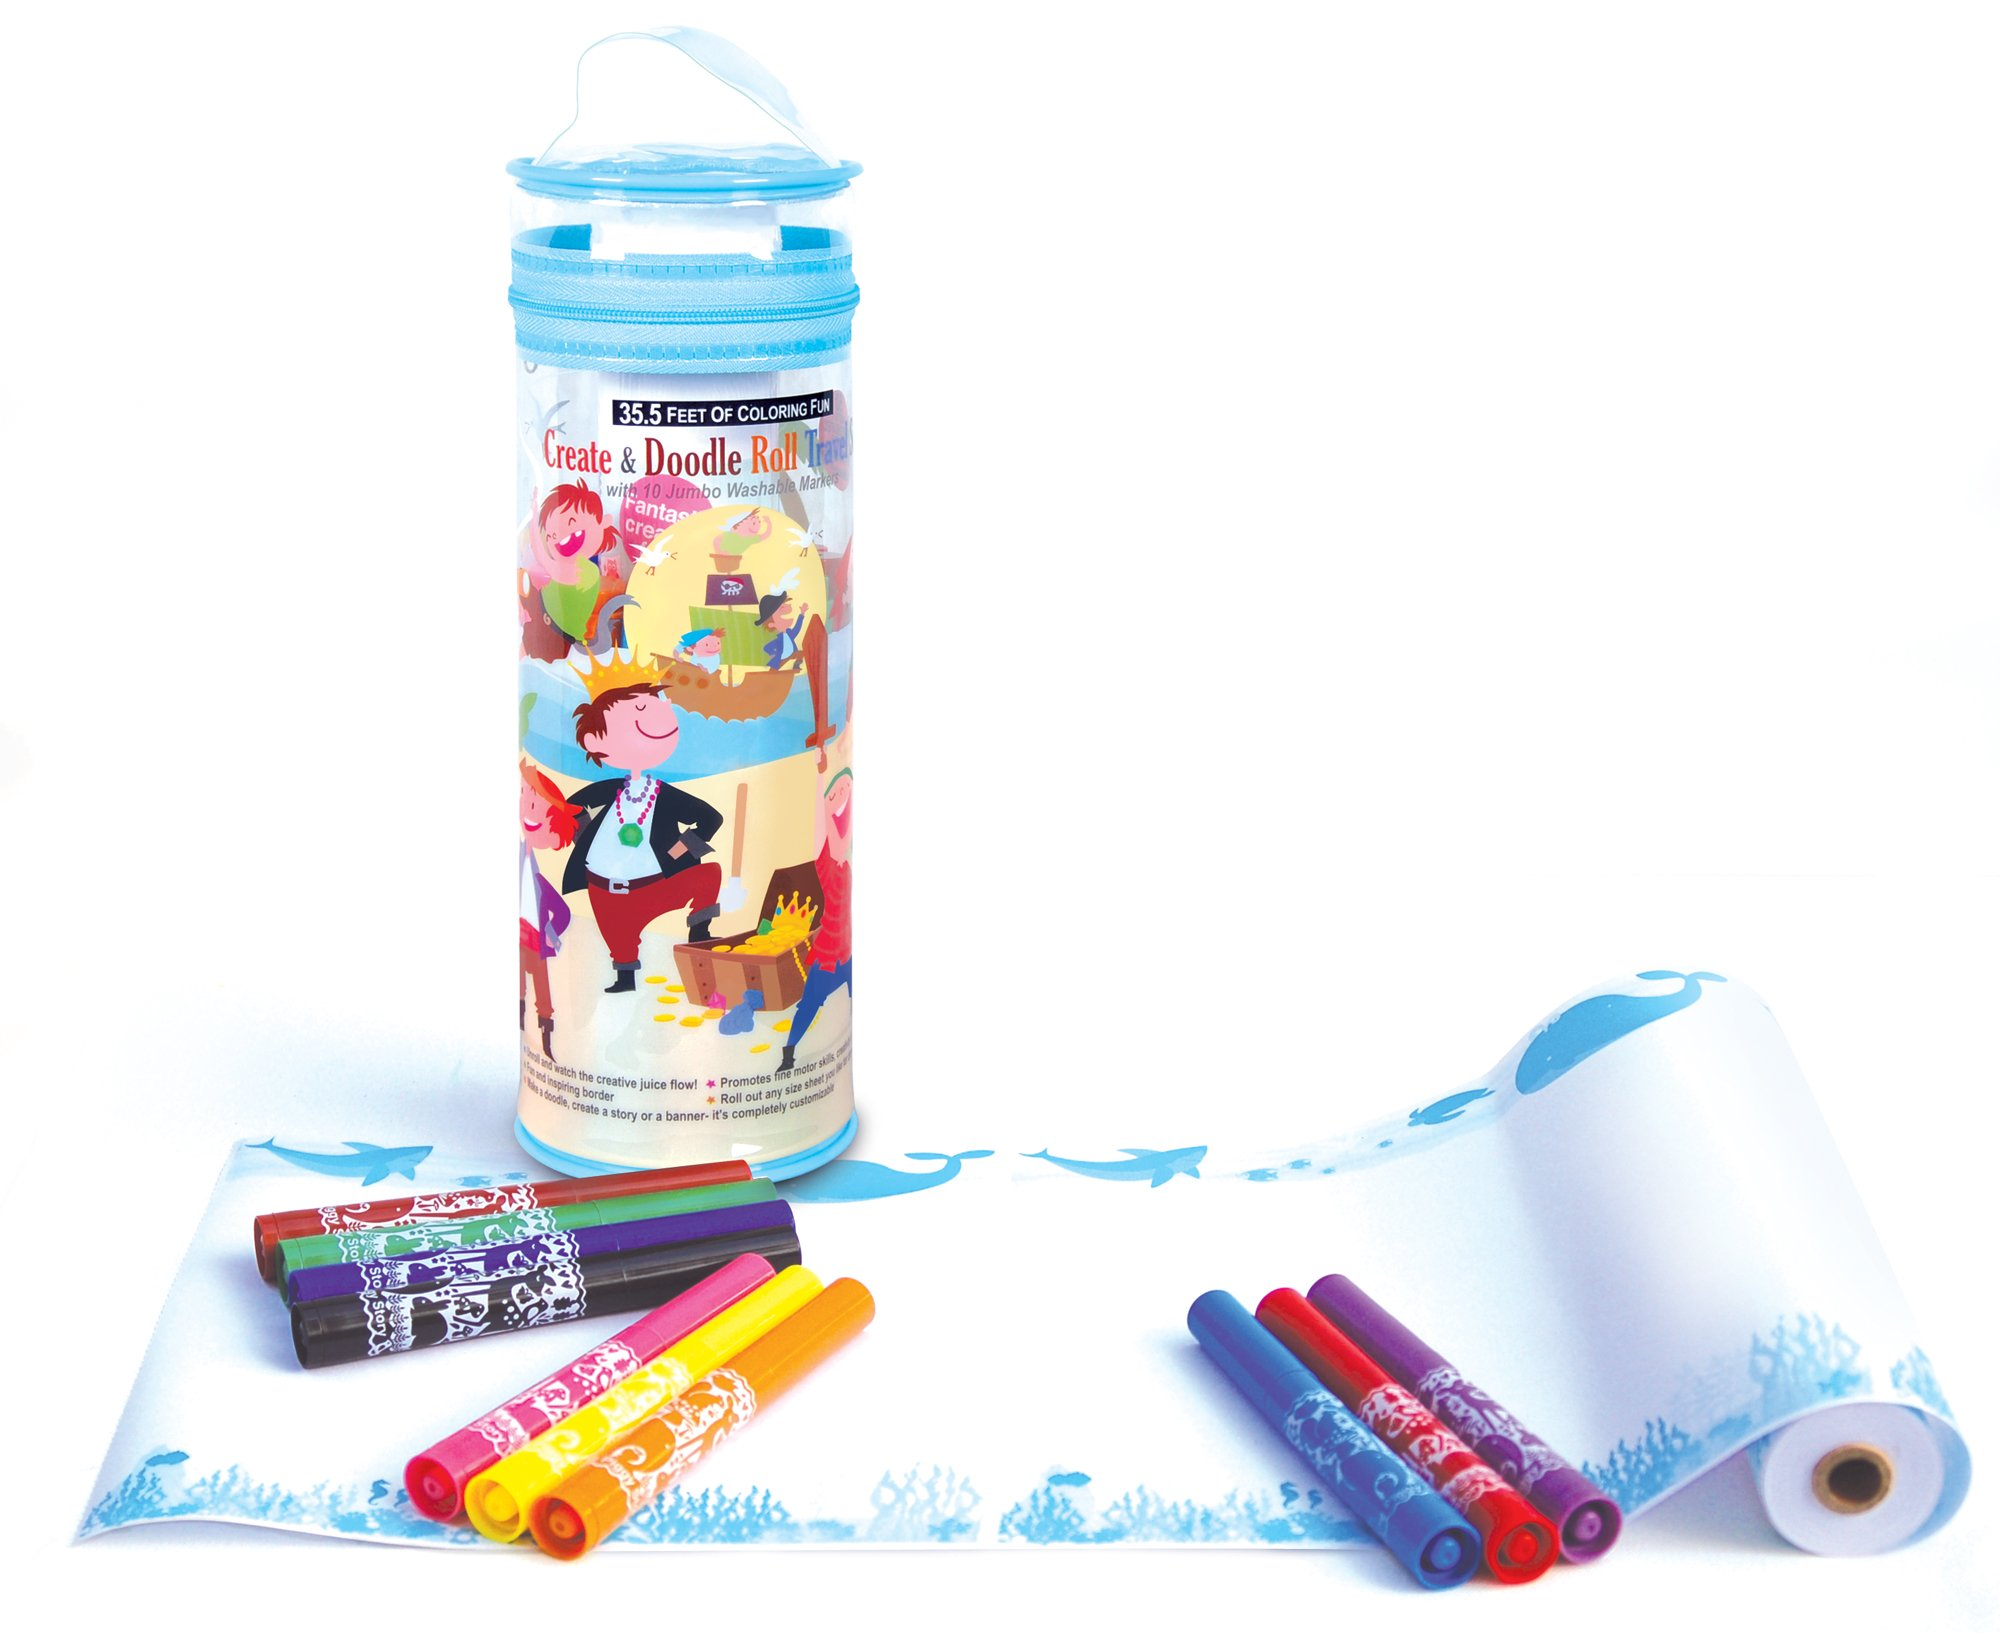 The Piggy Story 'Pirates Ahoy!' Create & Doodle Art Paper Roll Travel Set with Markers